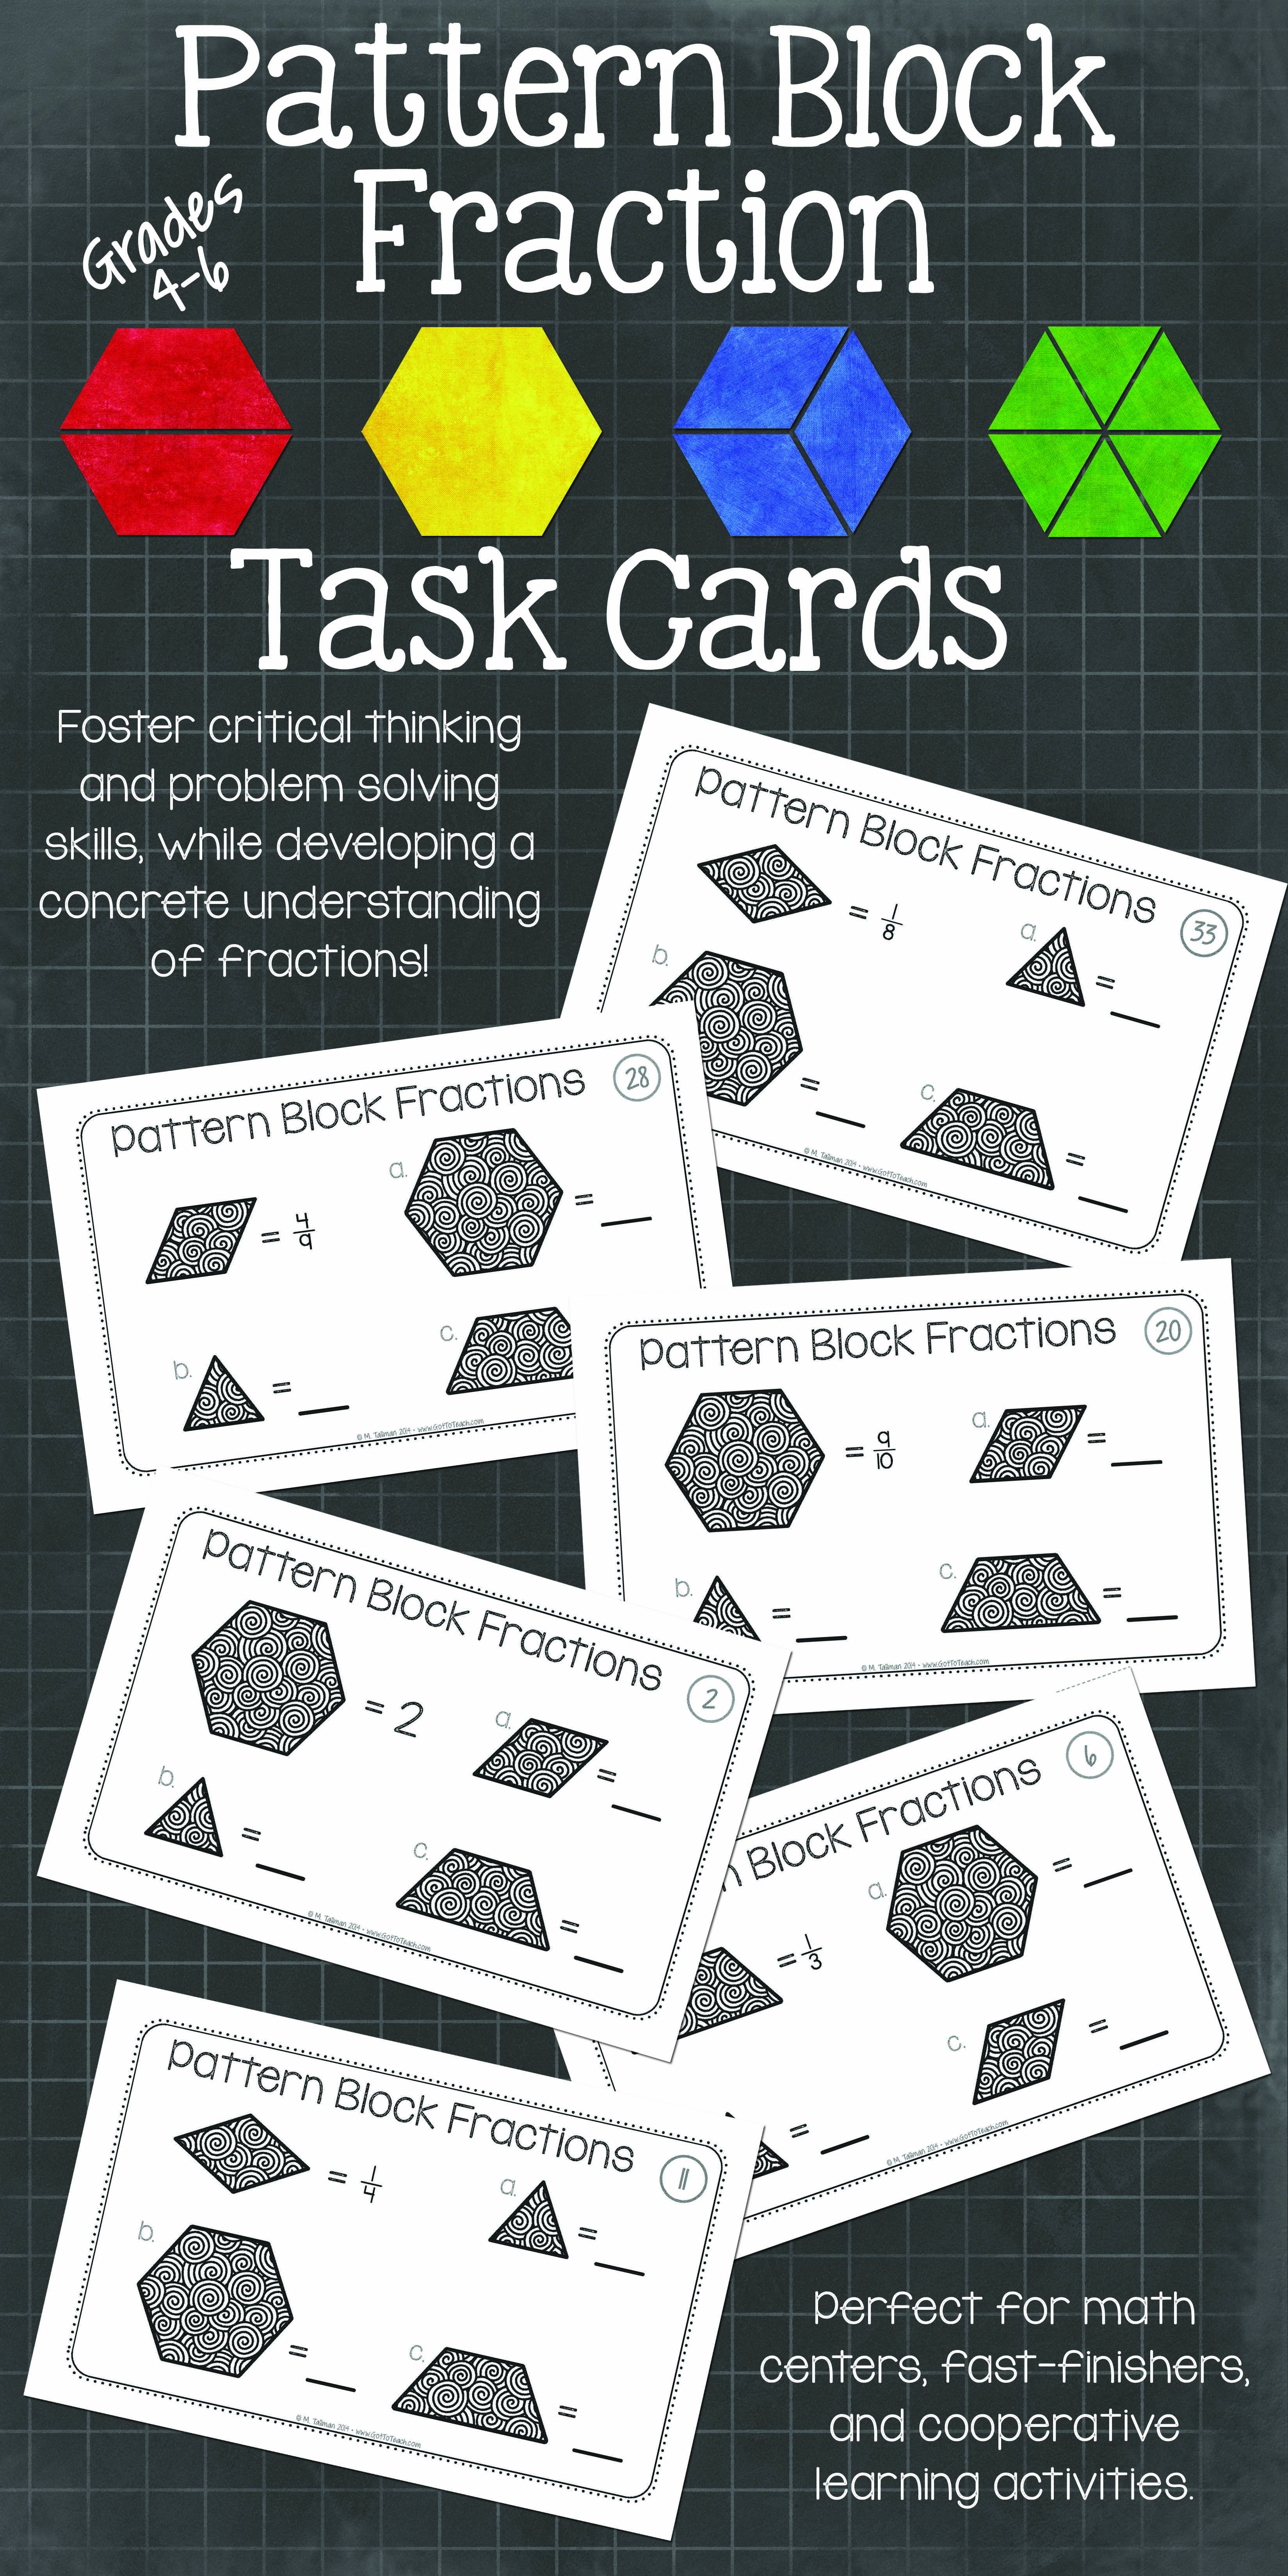 Pattern Block Fractions Amazing Inspiration Ideas